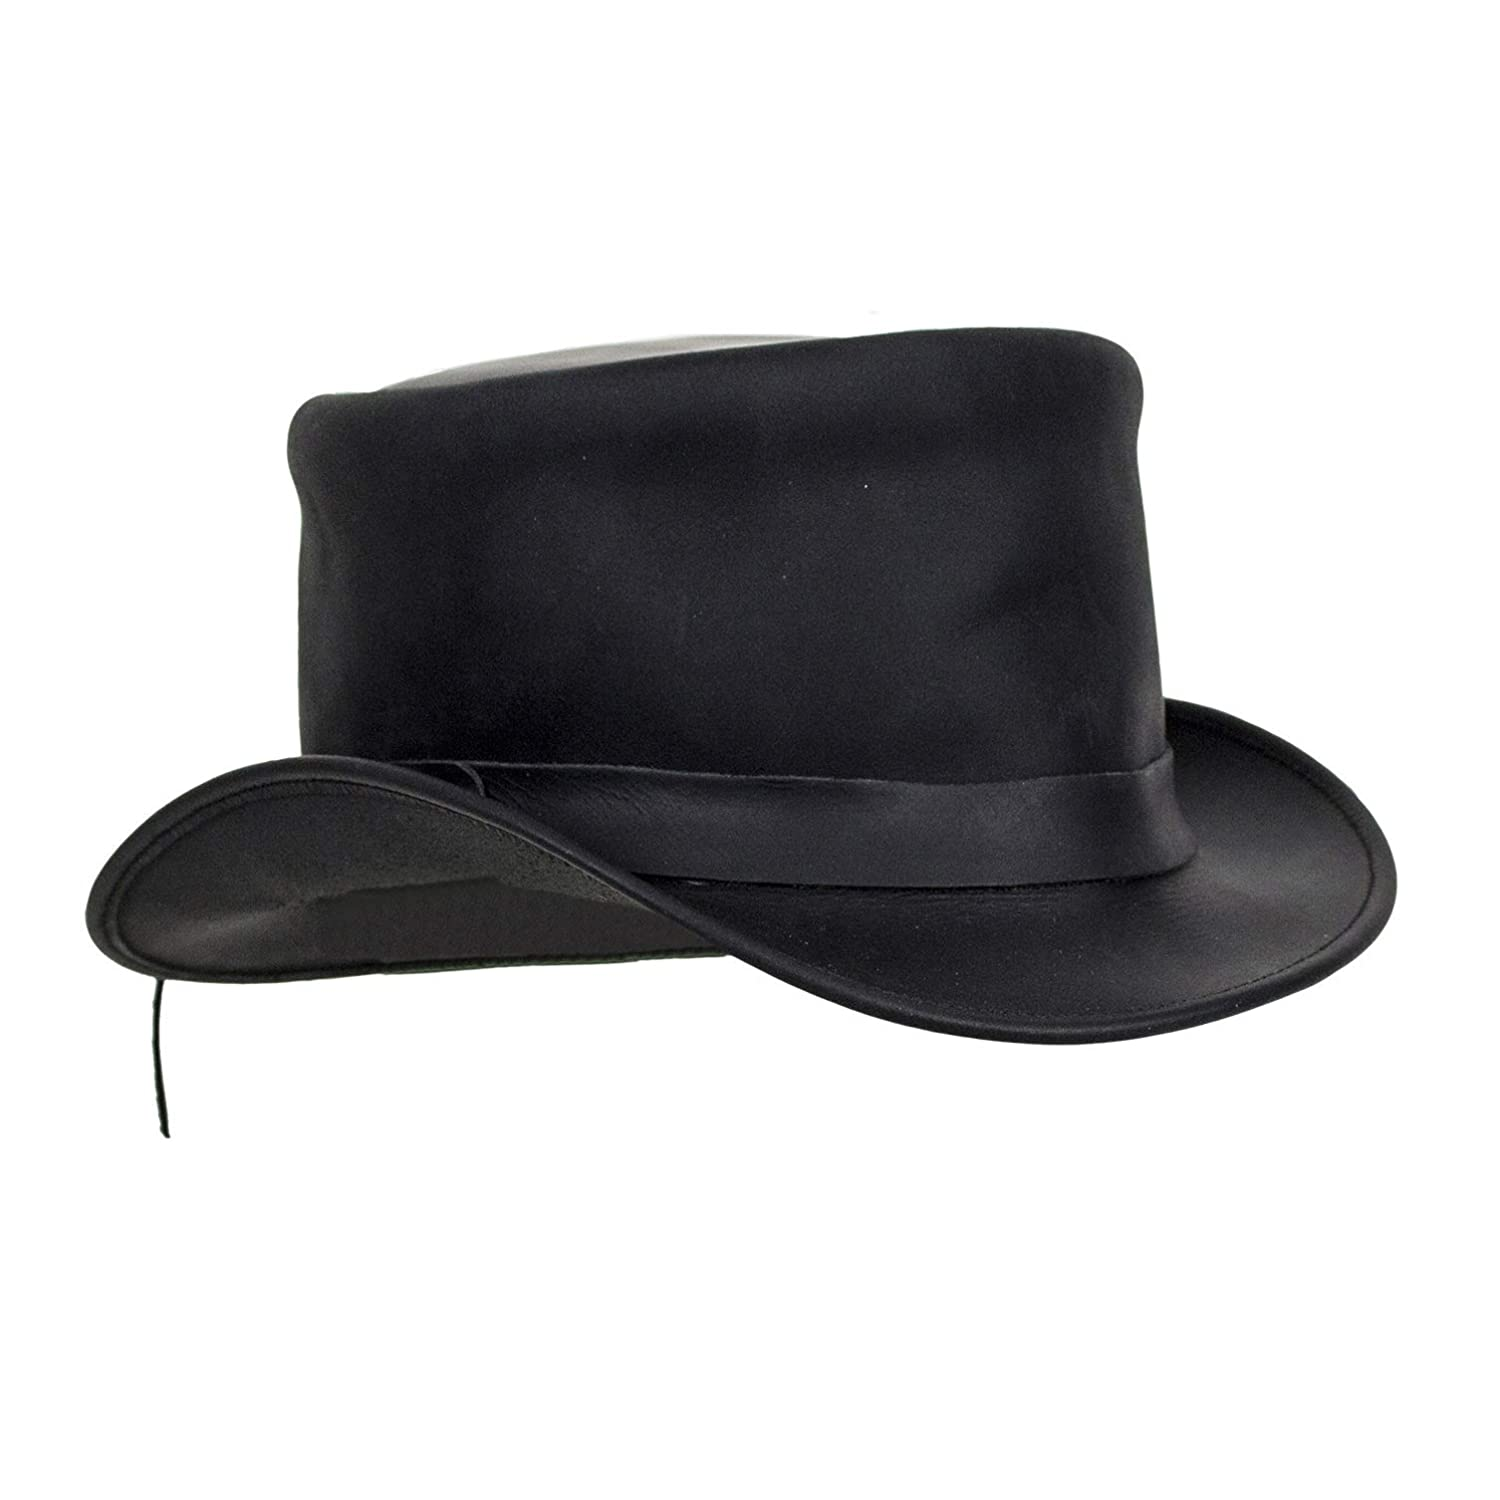 Steampunk Hats for Men | Top Hat, Bowler, Masks Black Leather Deadman Top Hat $69.00 AT vintagedancer.com